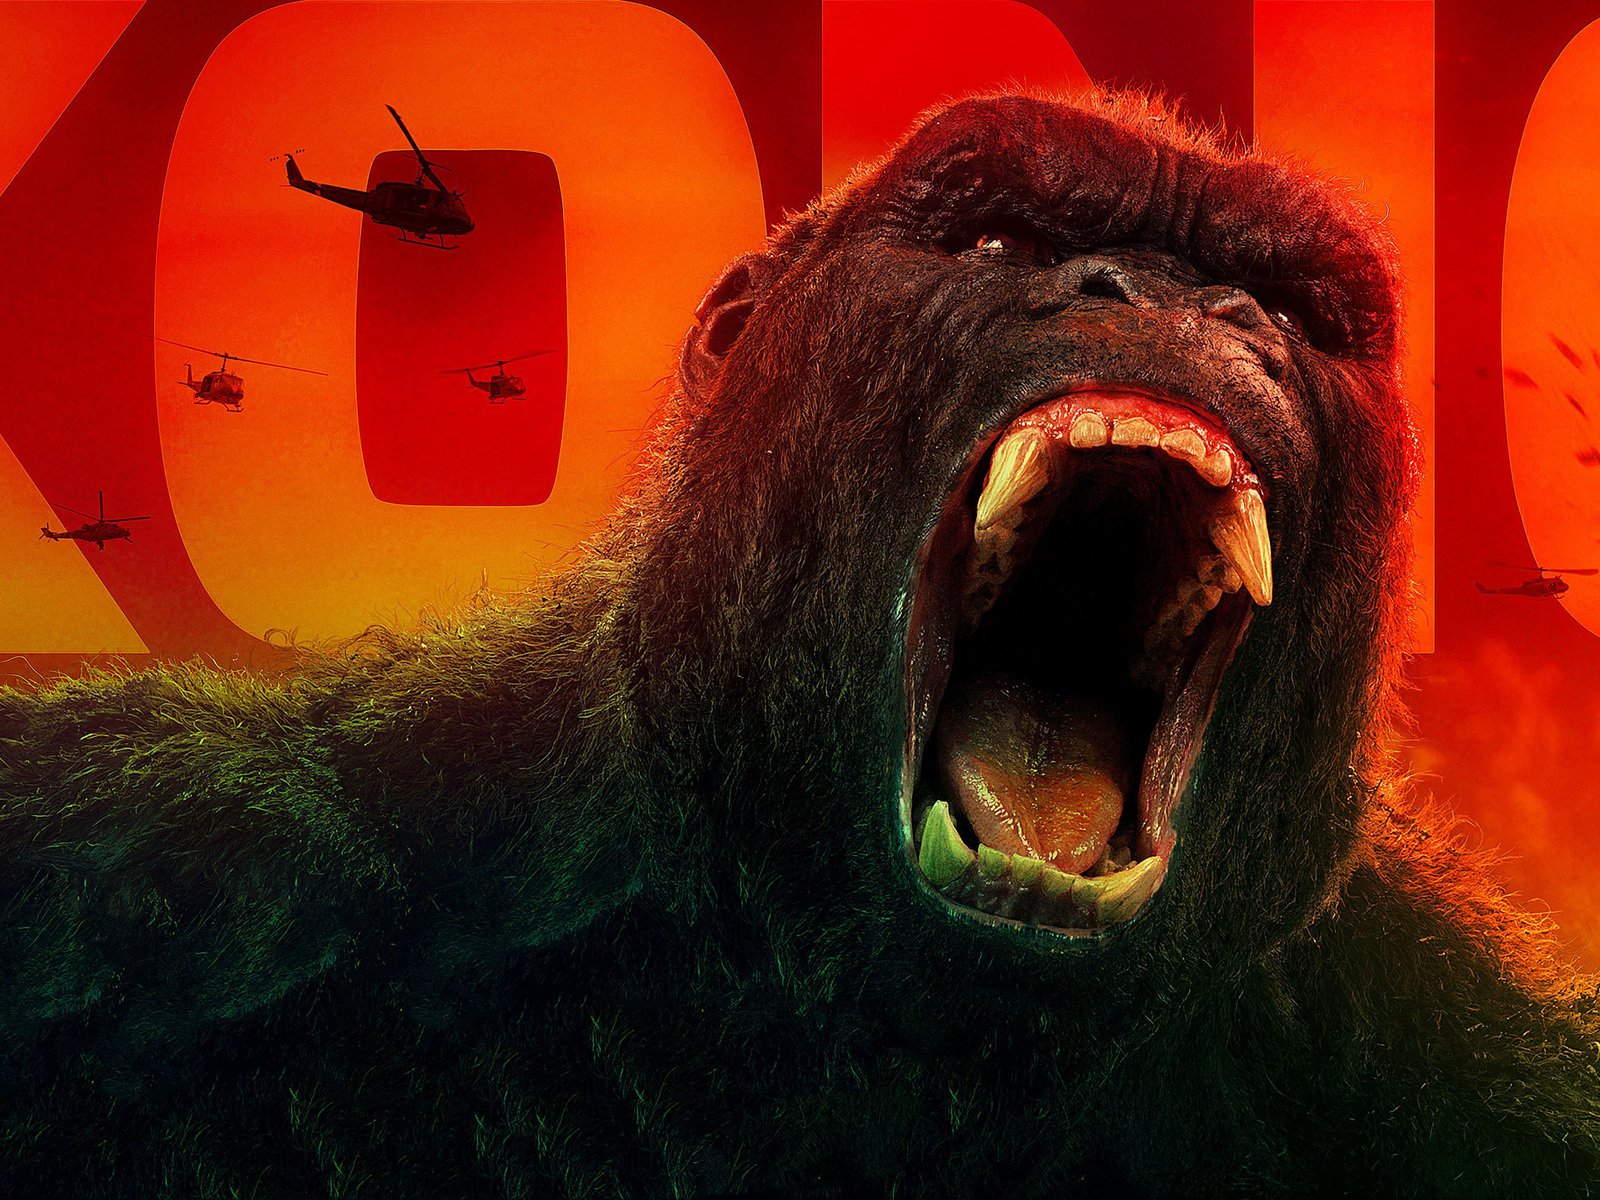 1600x1200 kong skull island all hail the king 4k 1600x1200 kong skull island all hail the king 4k voltagebd Image collections